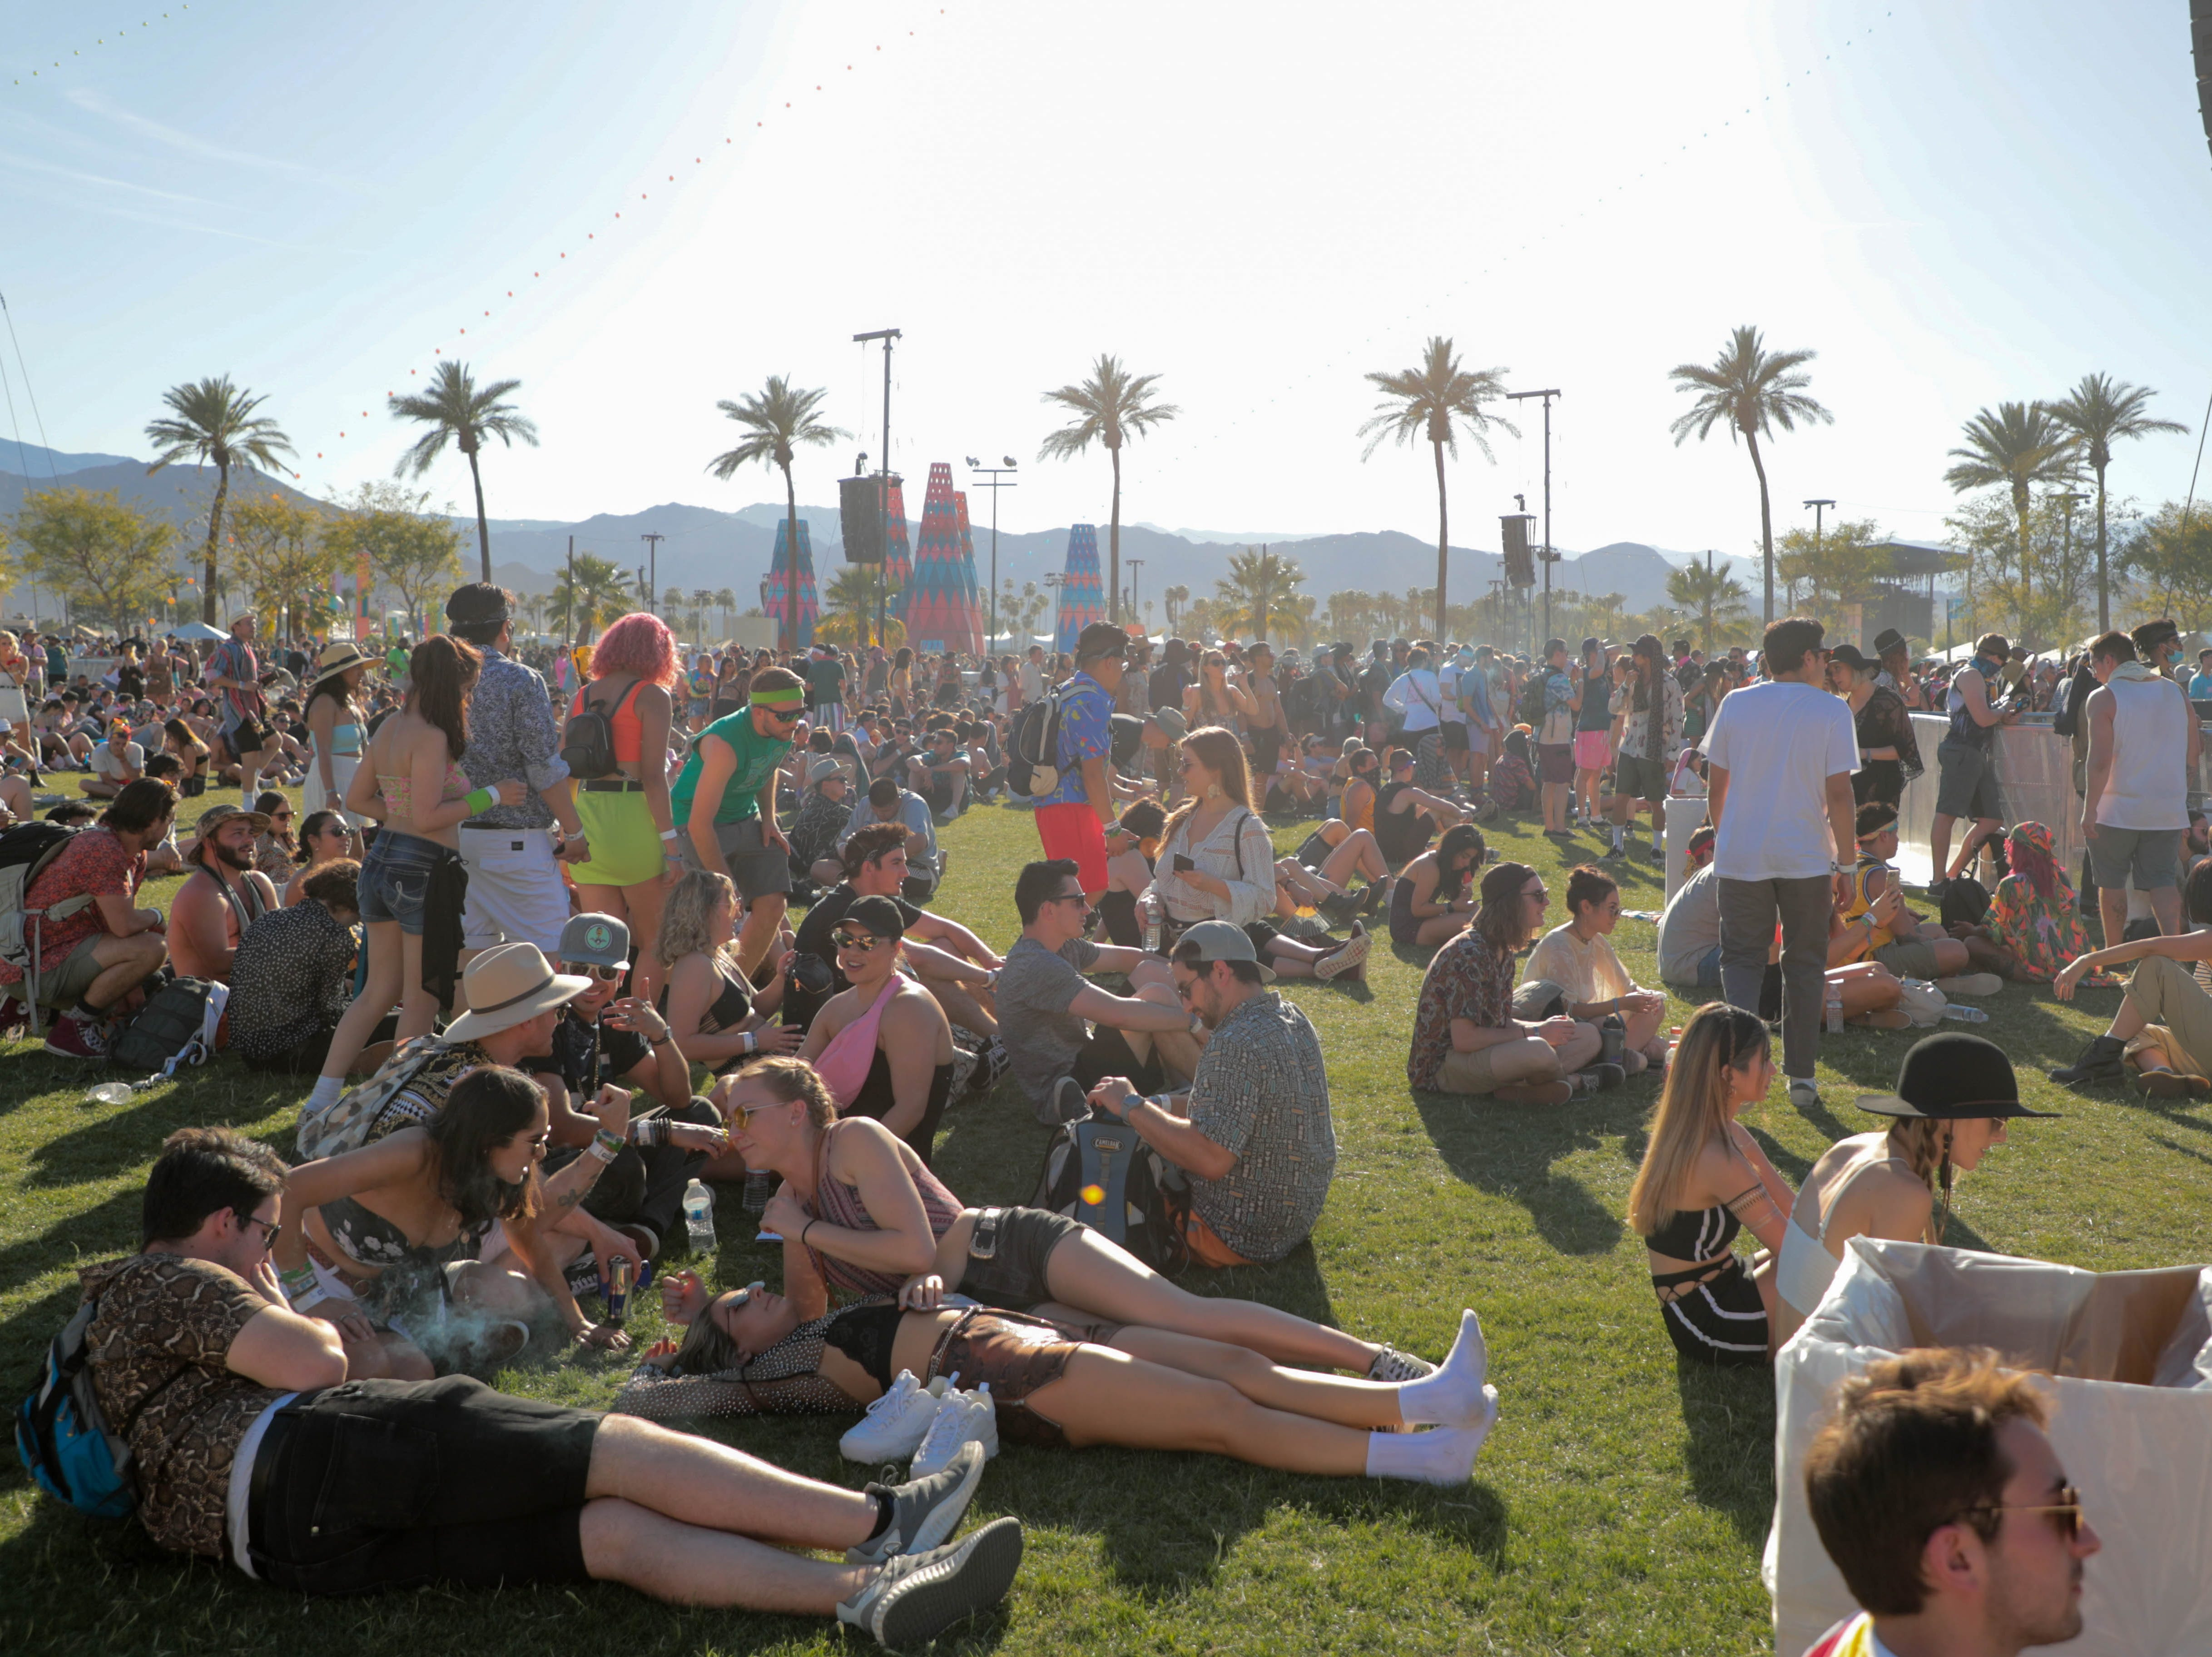 Fans listen as Mac Demarco performs at Coachella Valley Music and Arts Festival on Saturday, April 13, 2019.